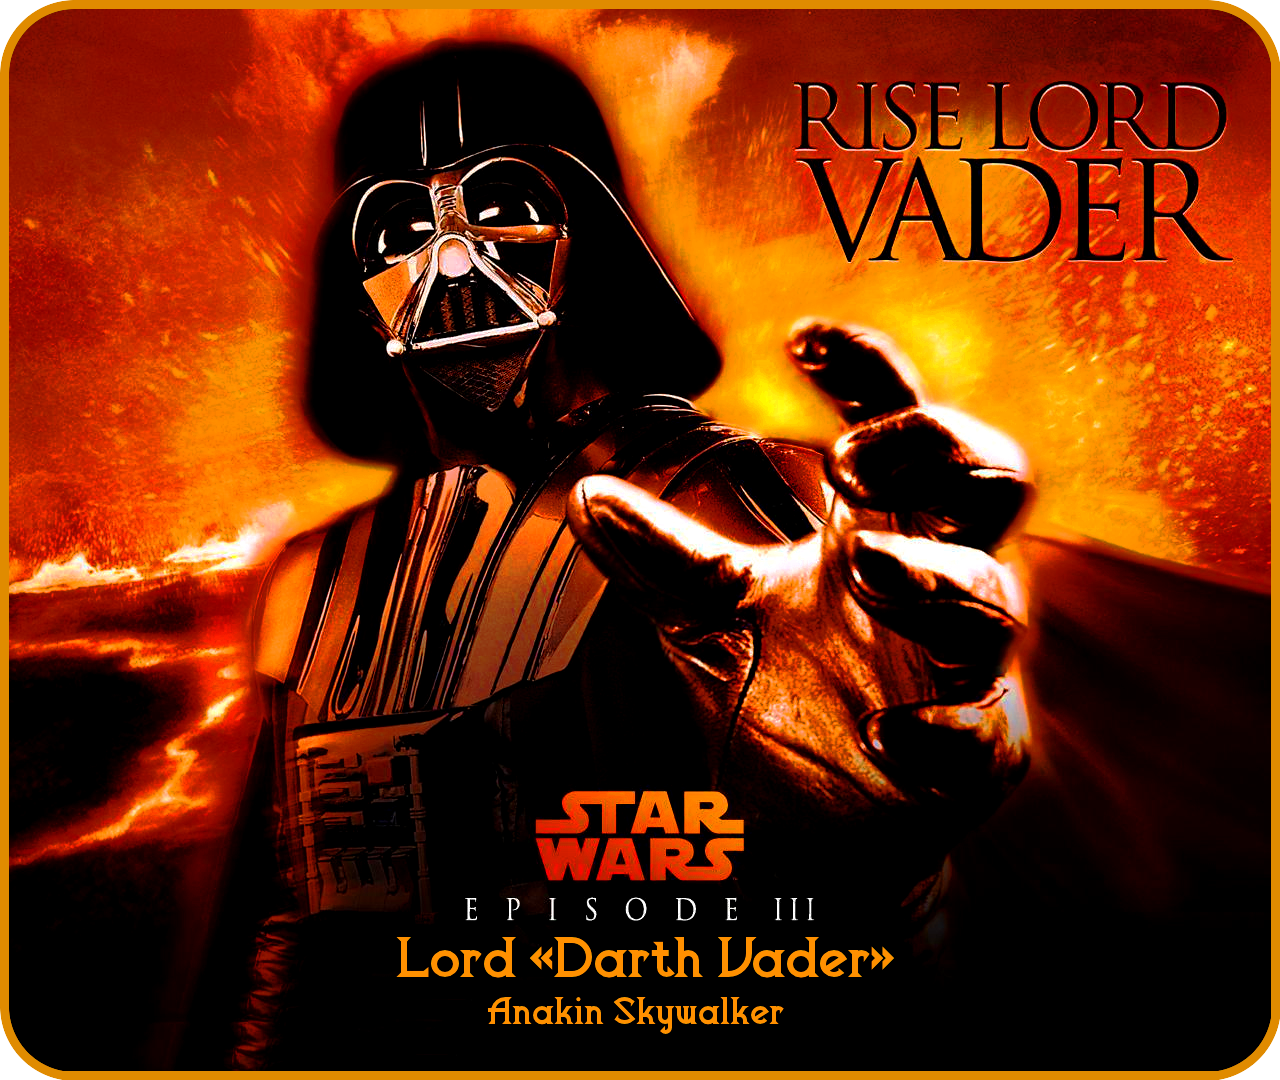 Star Wars» Episode III «Lord VADER» [ «Anakin Skywalker» ] Wallpapers